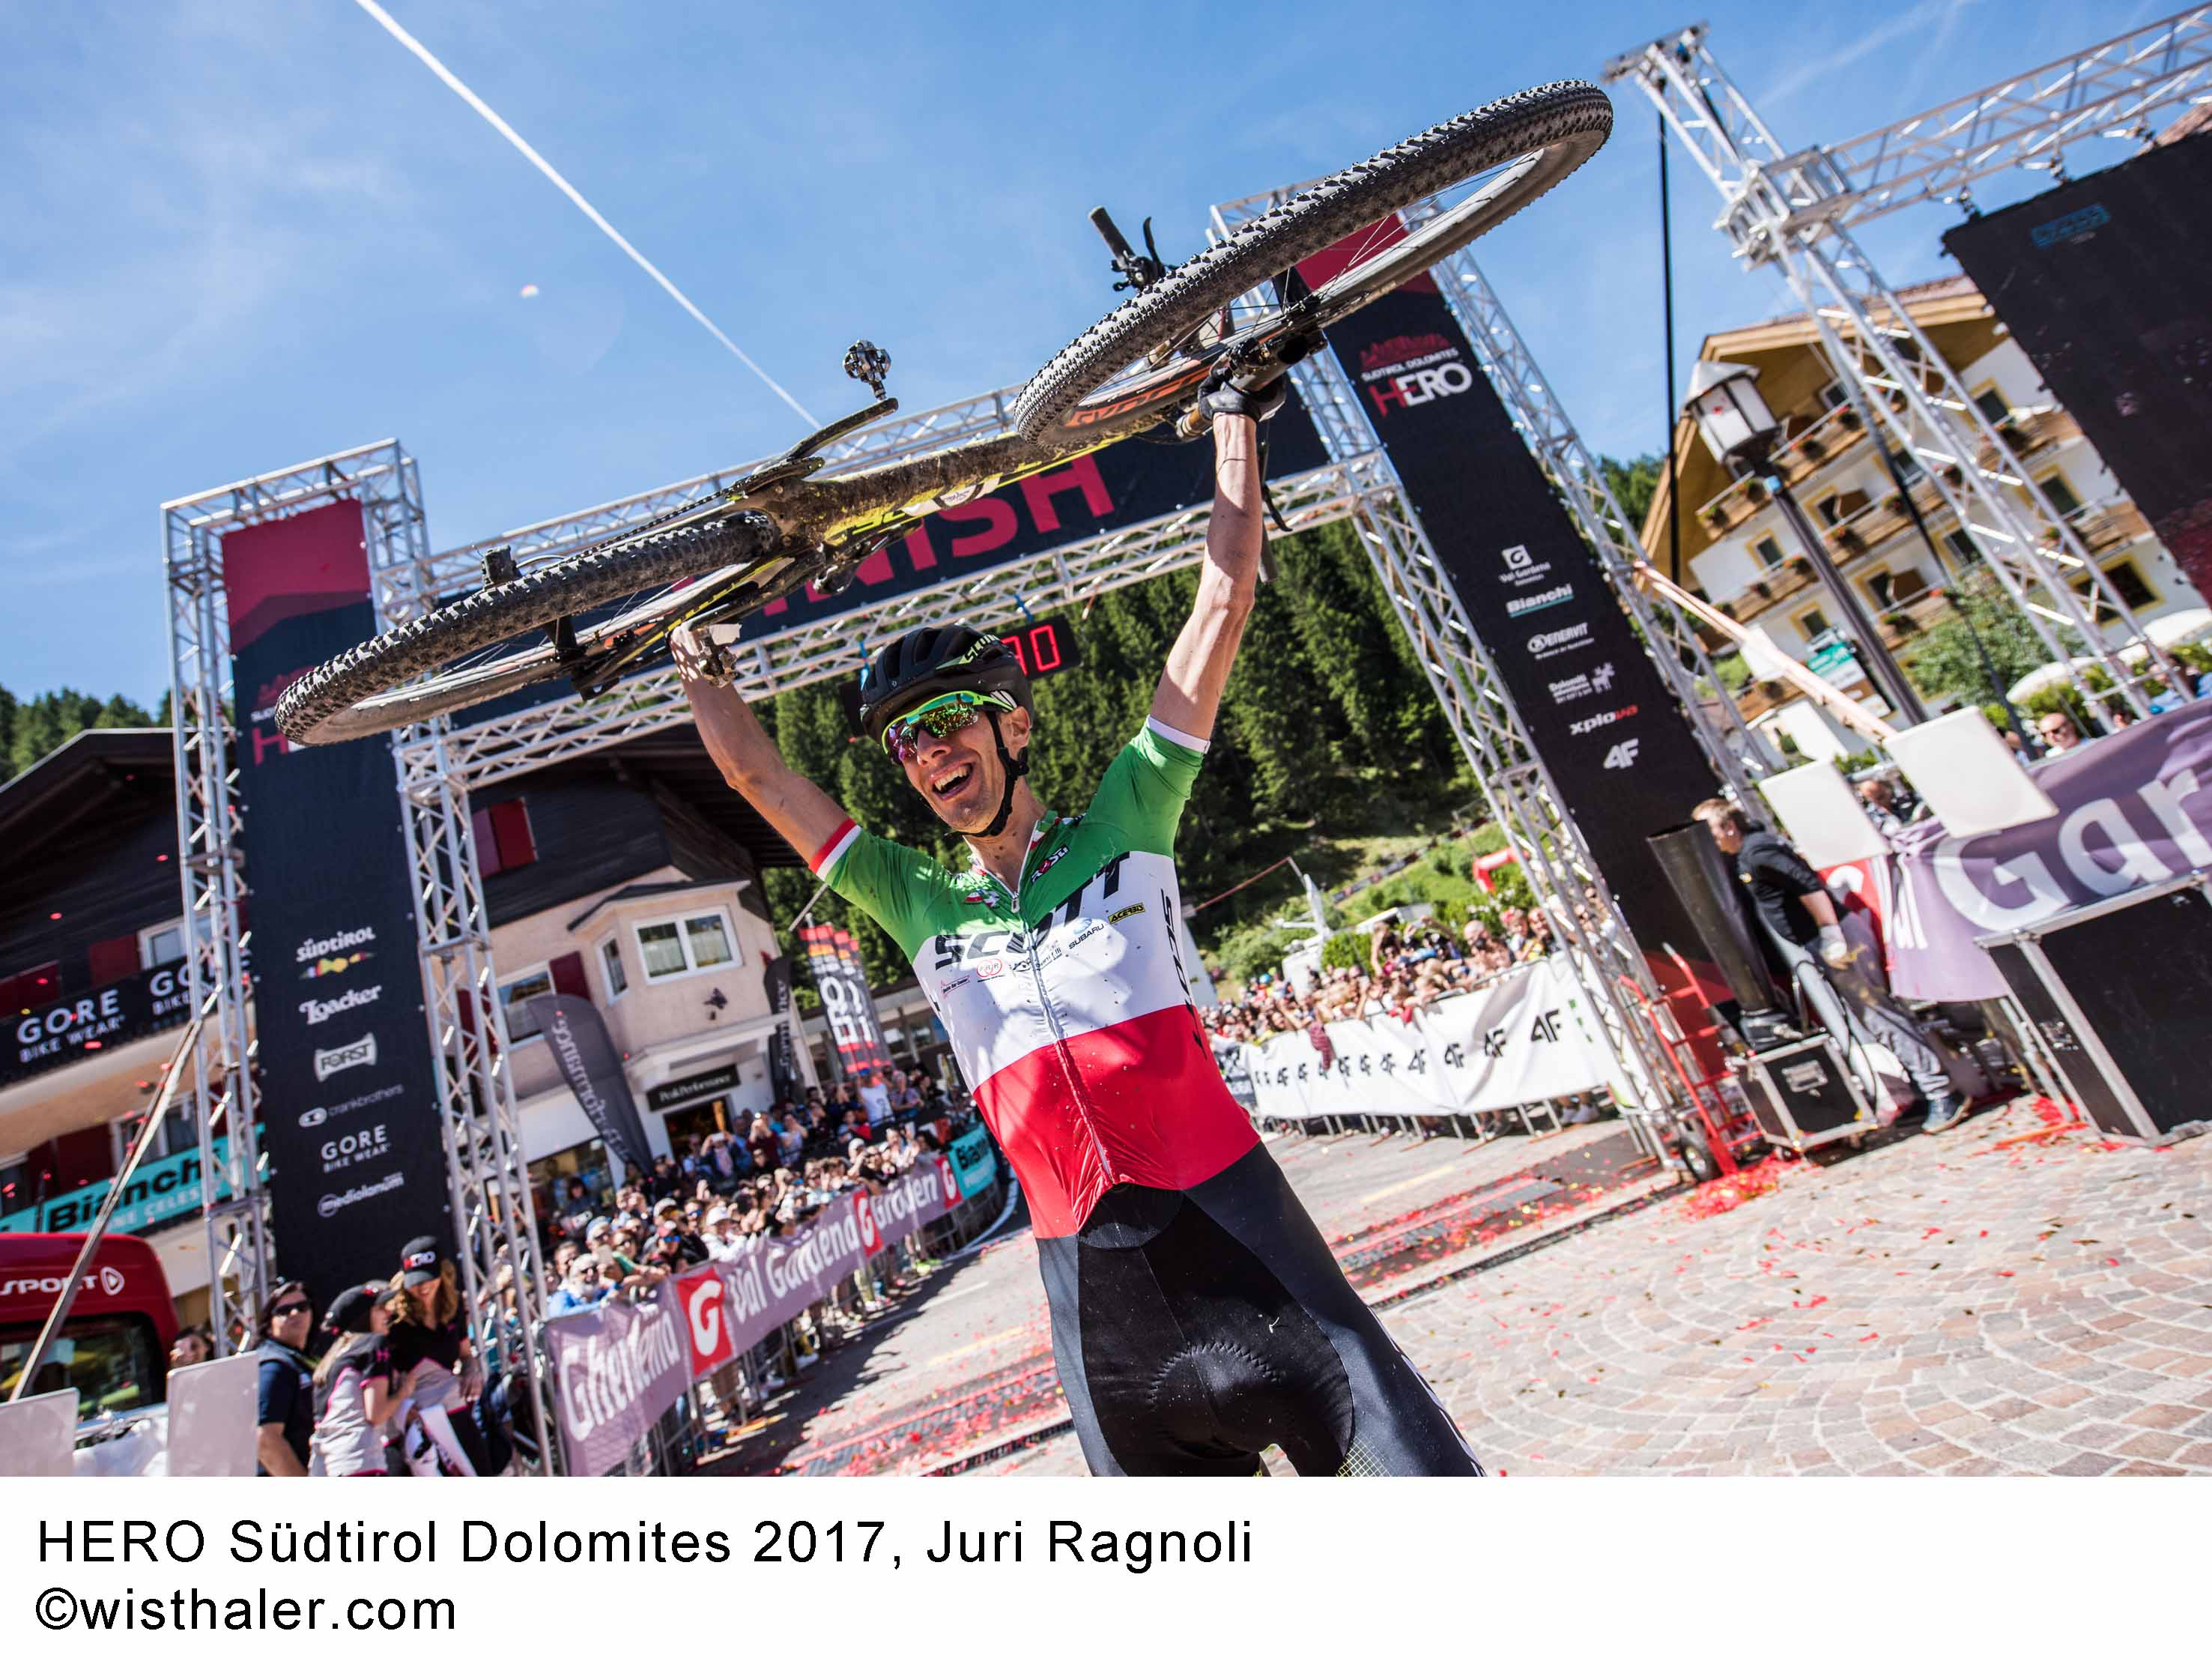 HERO Dolomites 2017: Classifiche e Fotografie